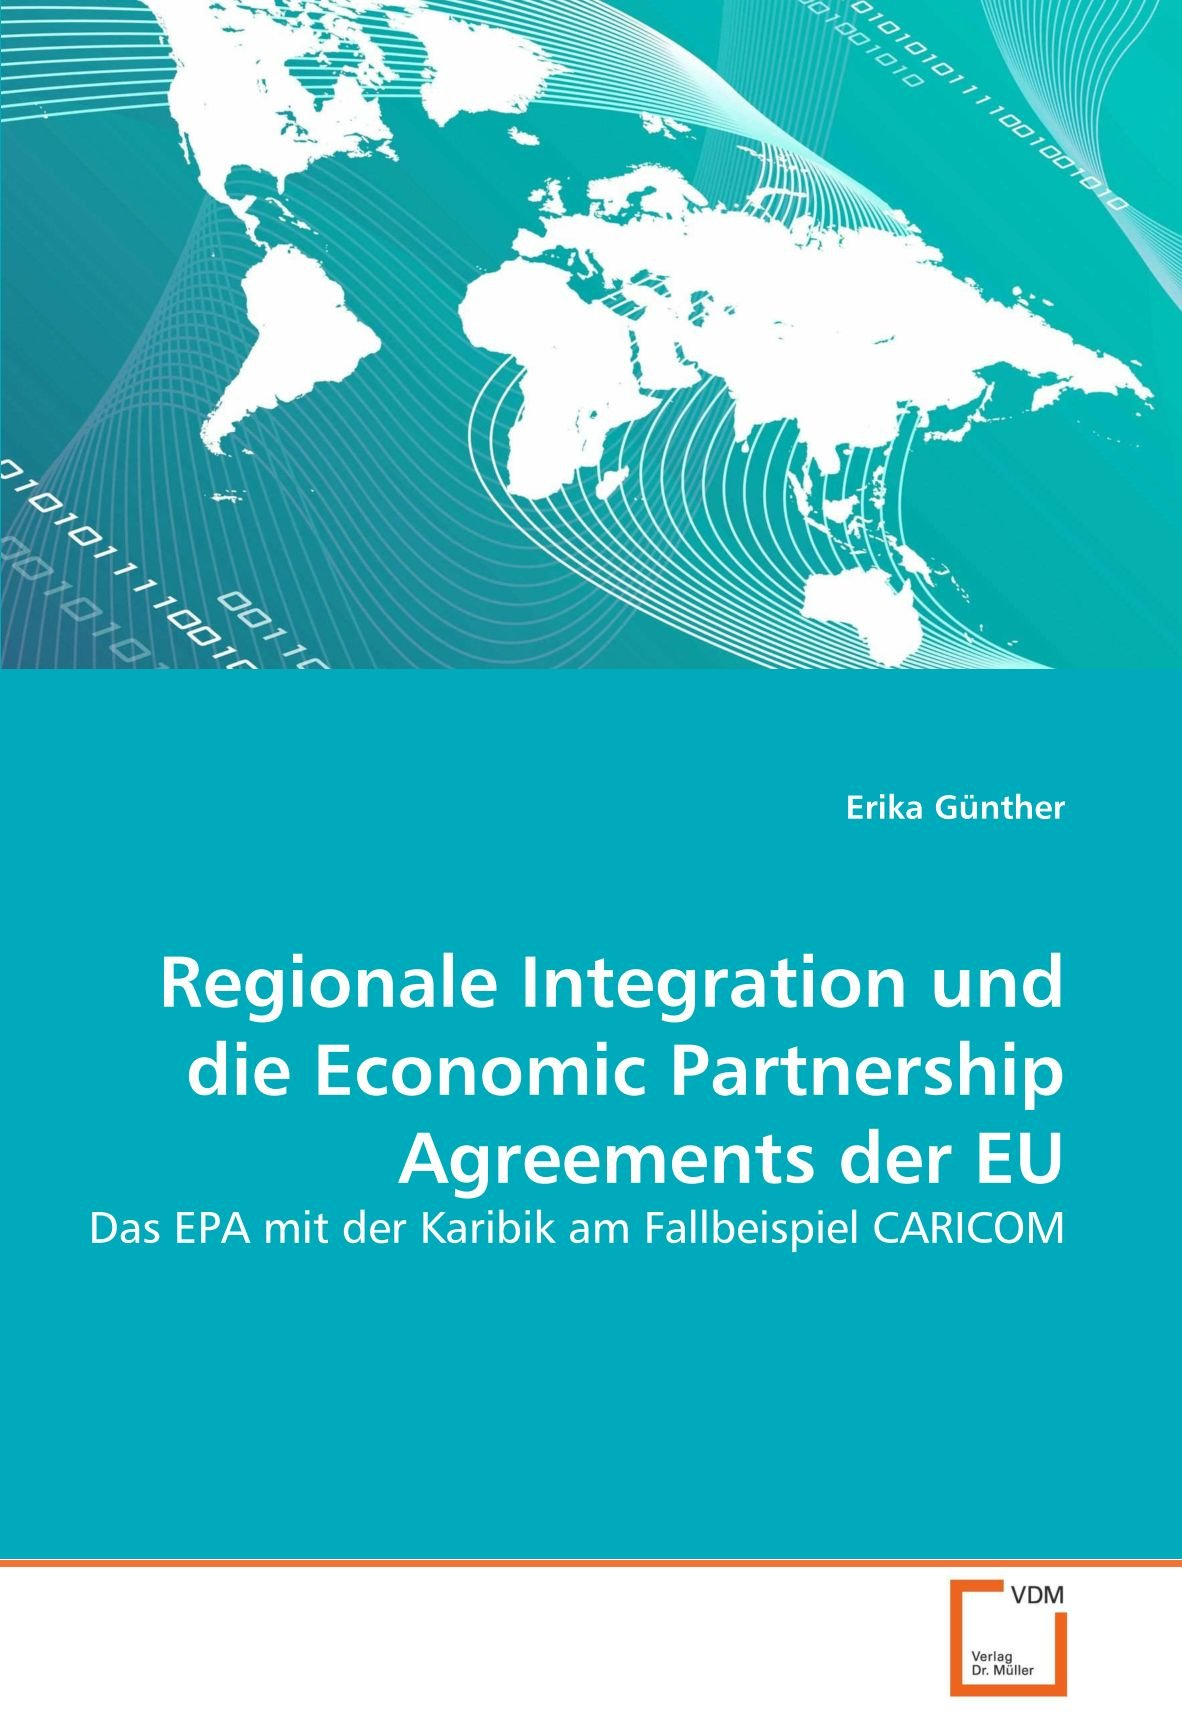 Regionale Integration Und Die Economic Partnership Agreements Der Eu